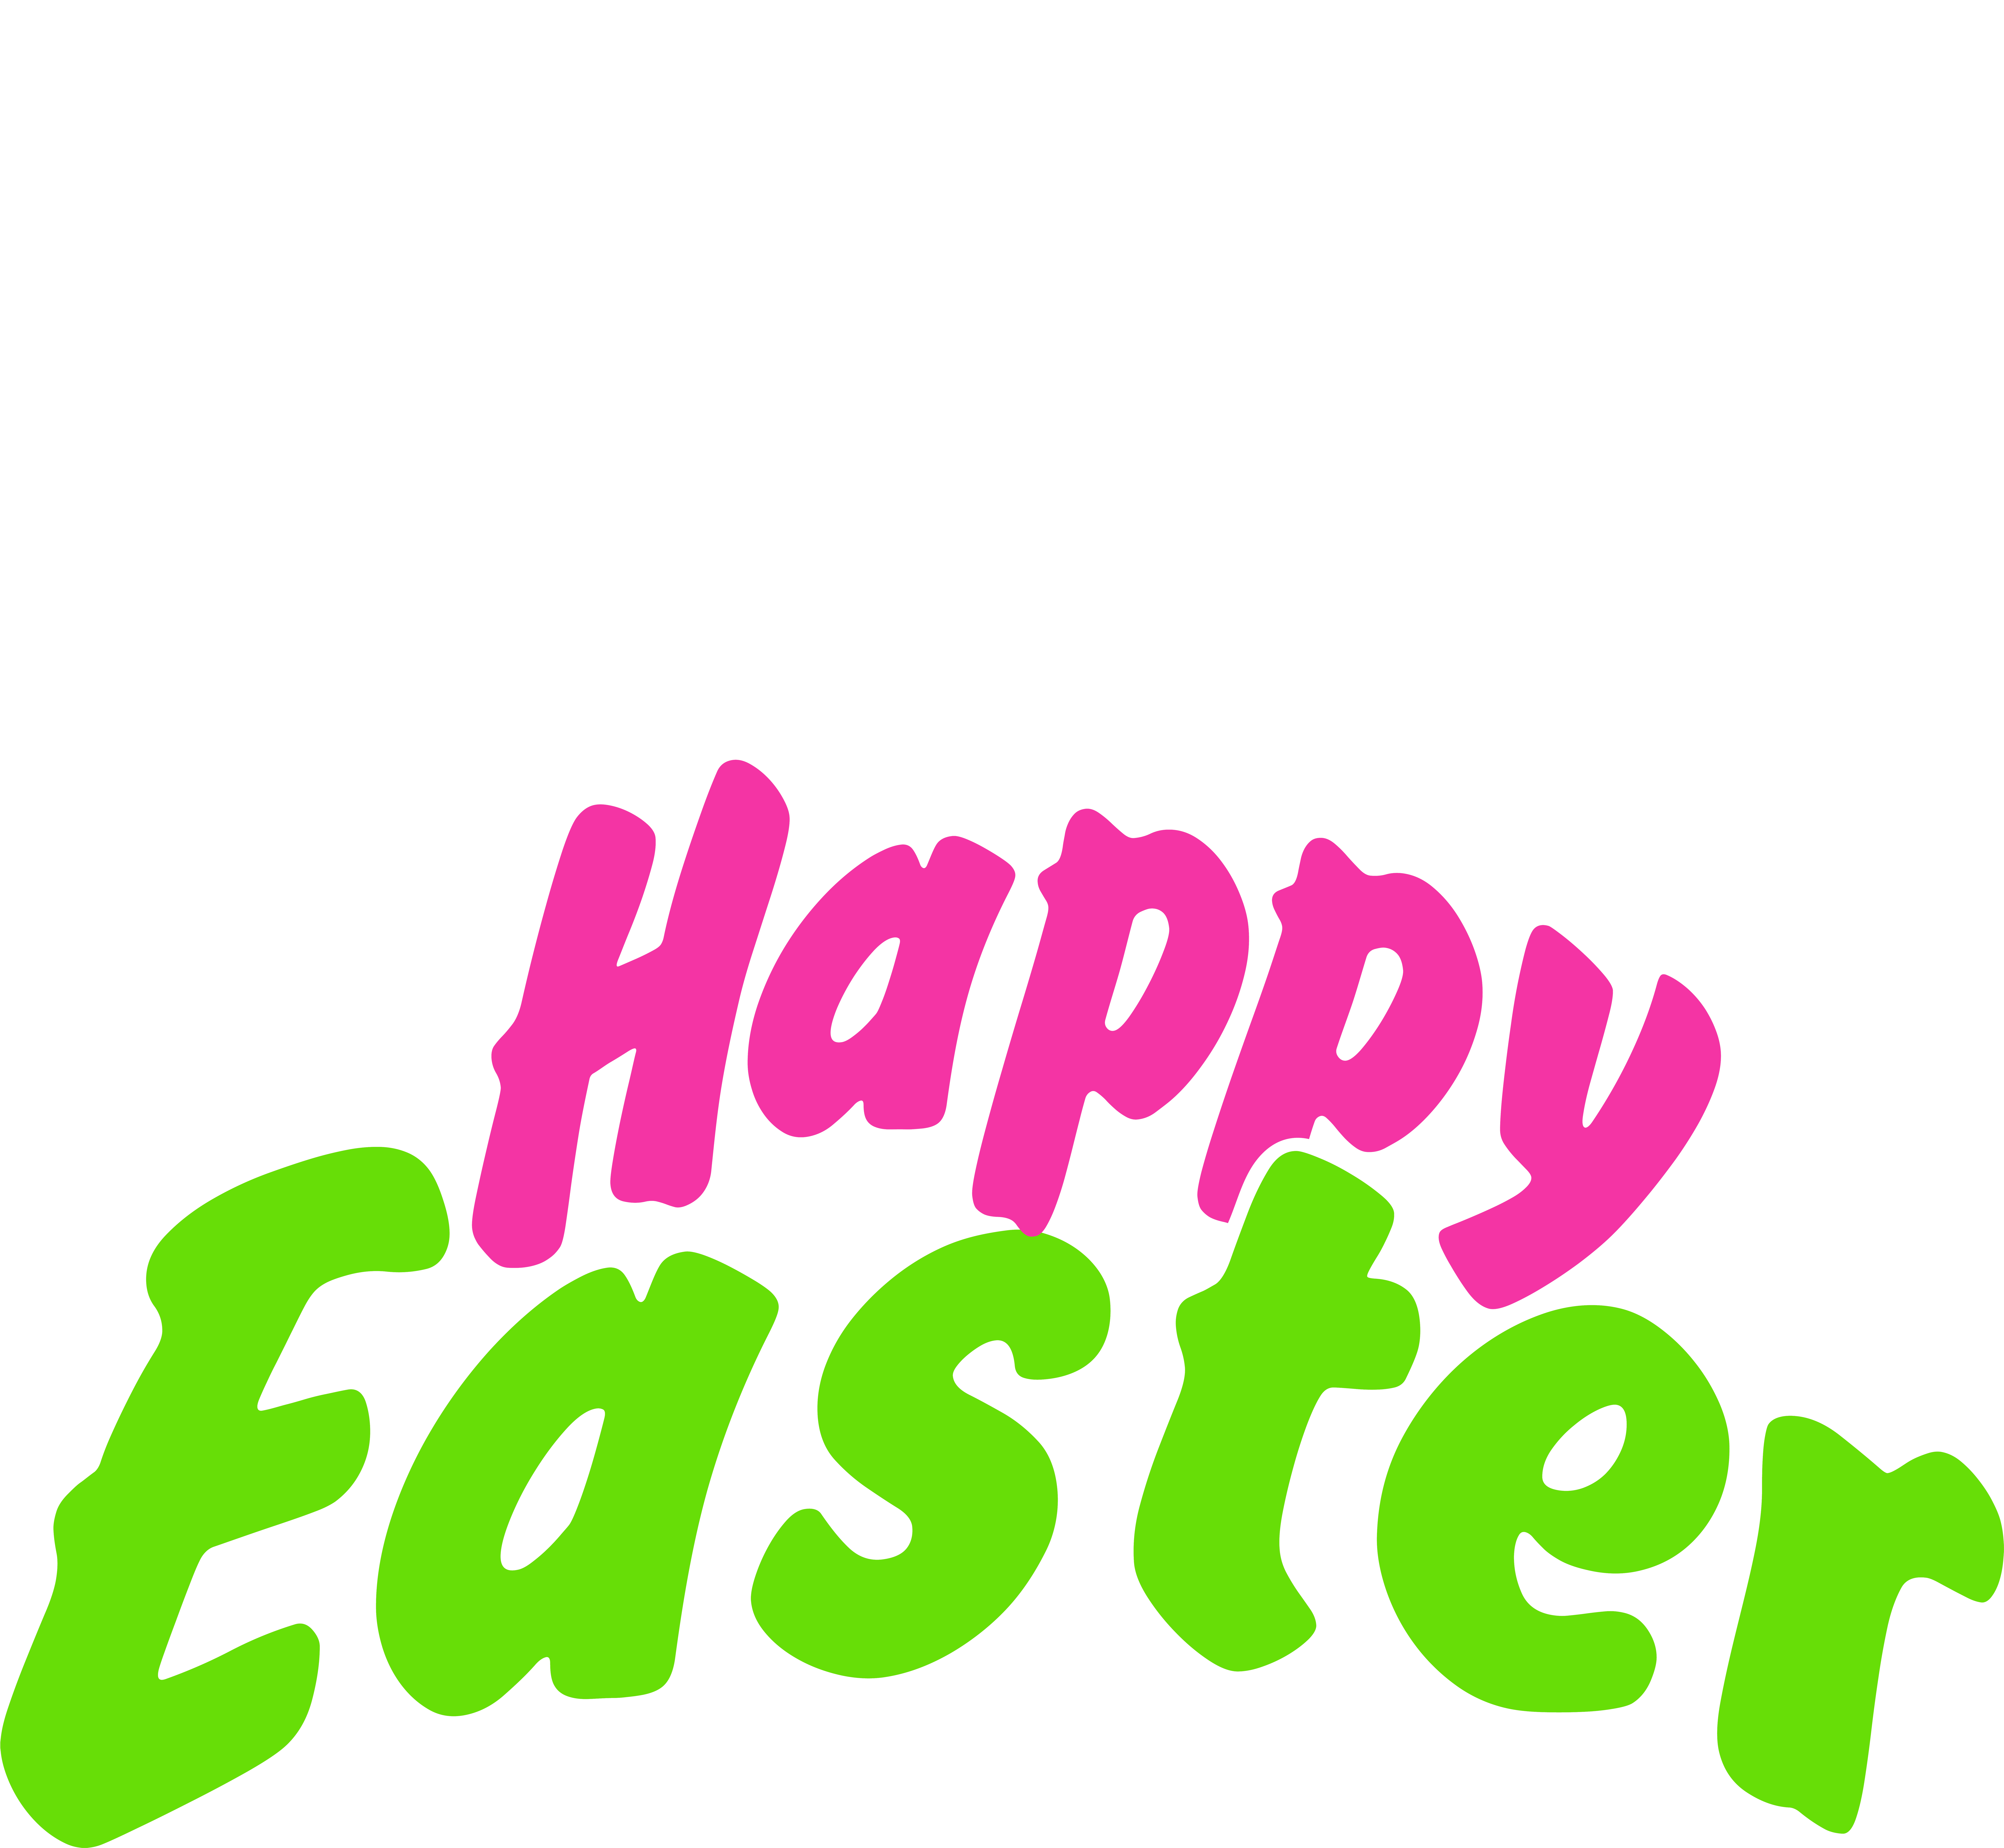 Happy Easter Clip Art Image.